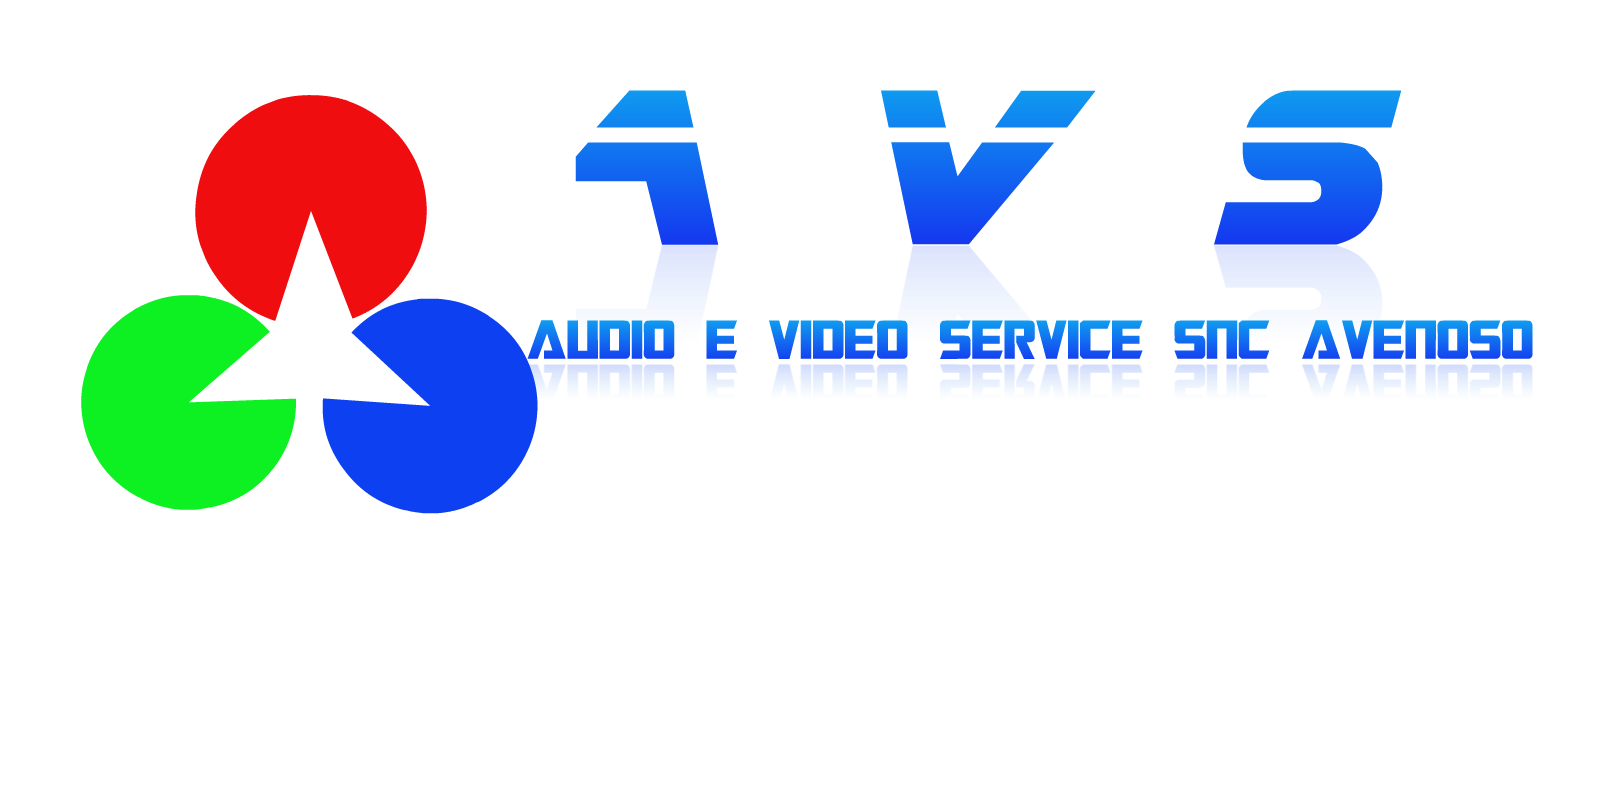 Audio e Video Service s.n.c. dei F.lli S. e D. Avenoso